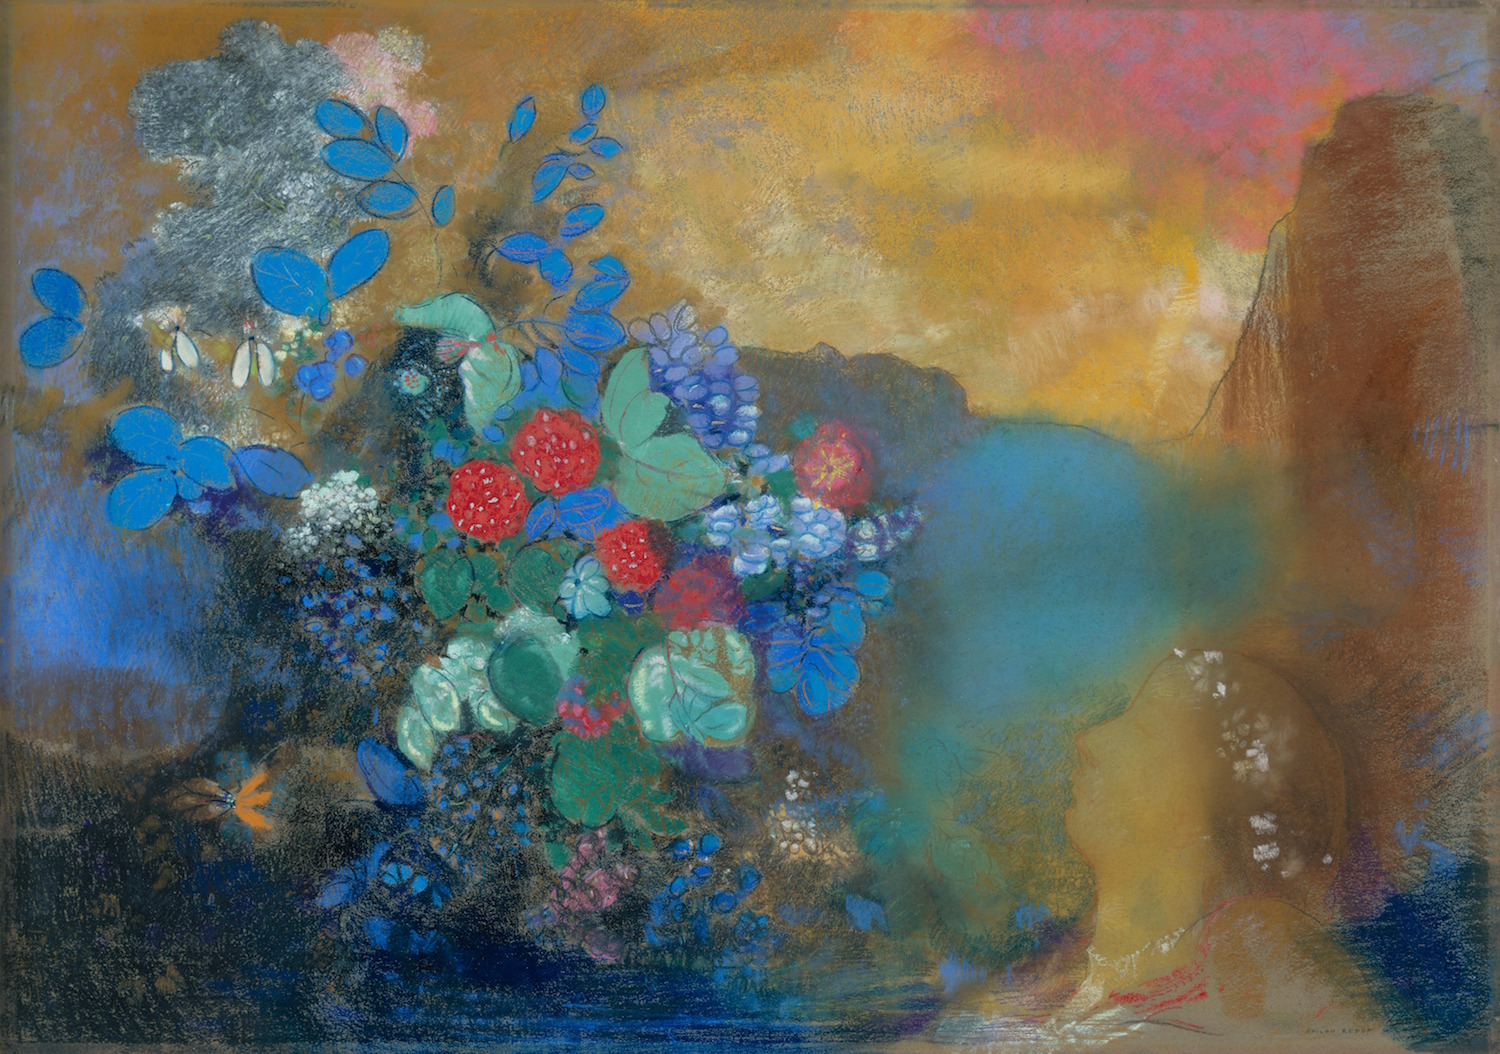 Ophelia among the Flowers by Odilon Redon | 5 Pastel Painting Tips You Need to Know to Be Successful | Artists Network